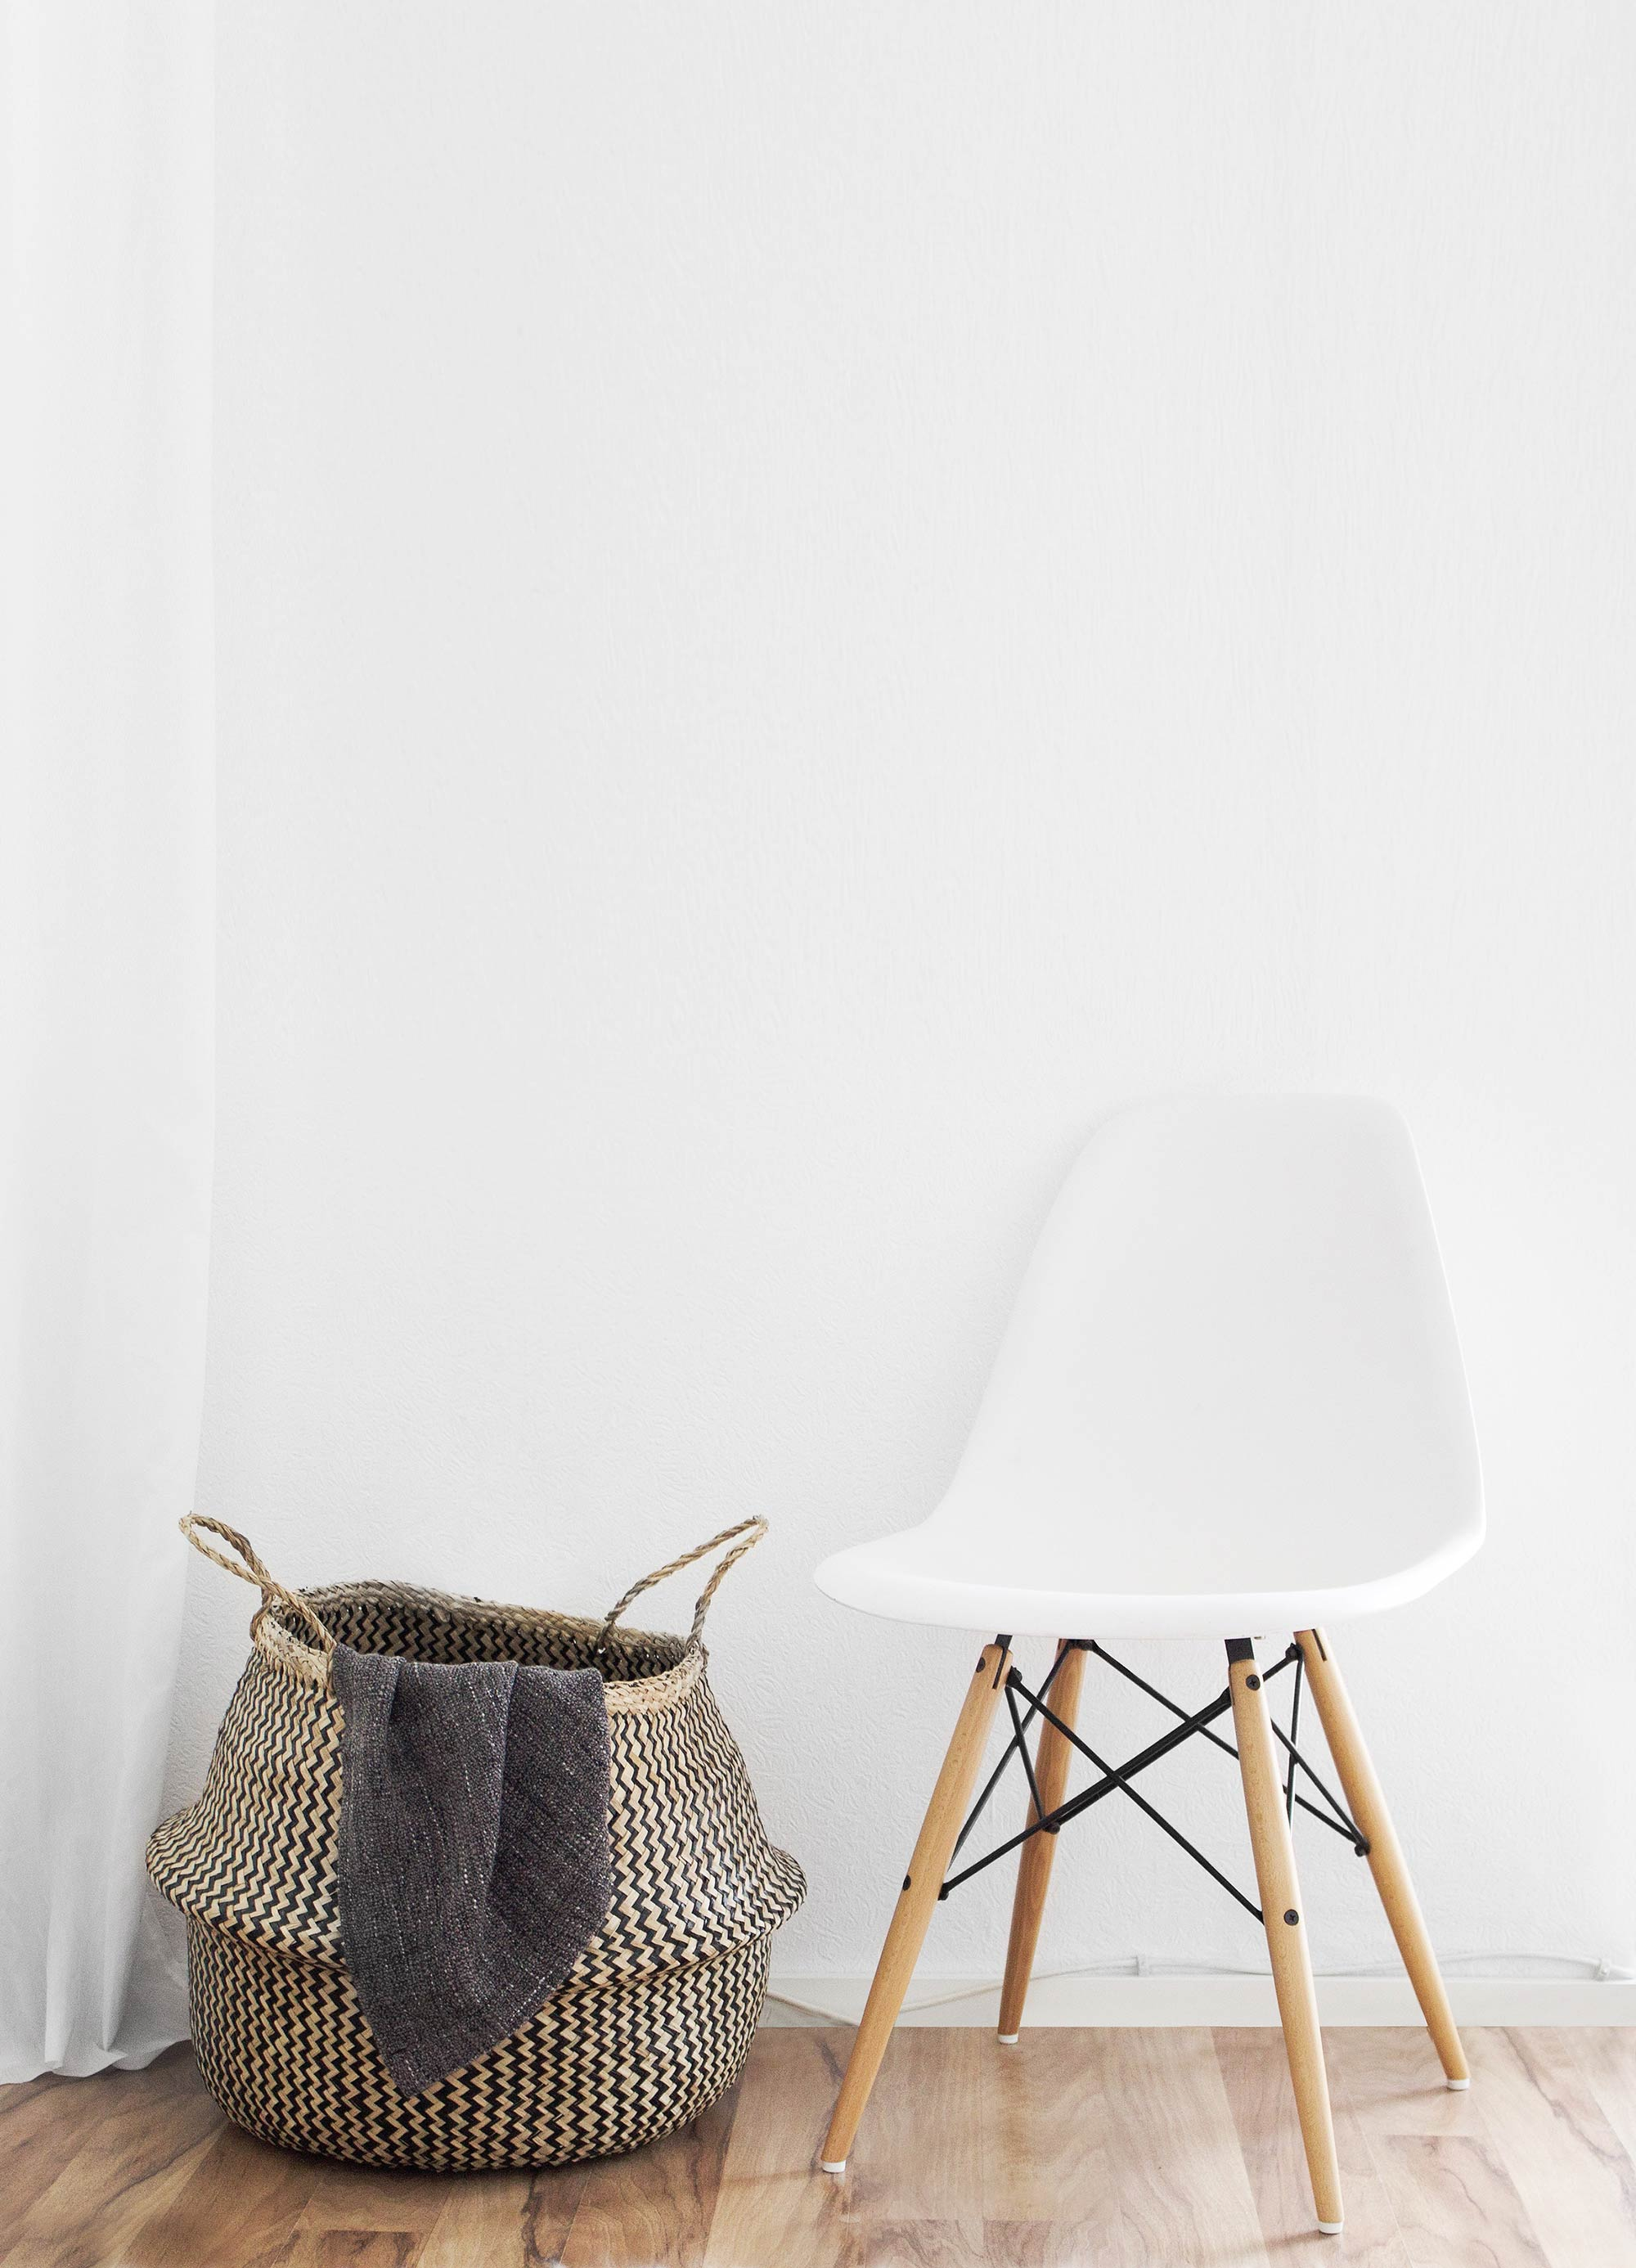 2-white-eames-chair-on-wooden-floor.jpg